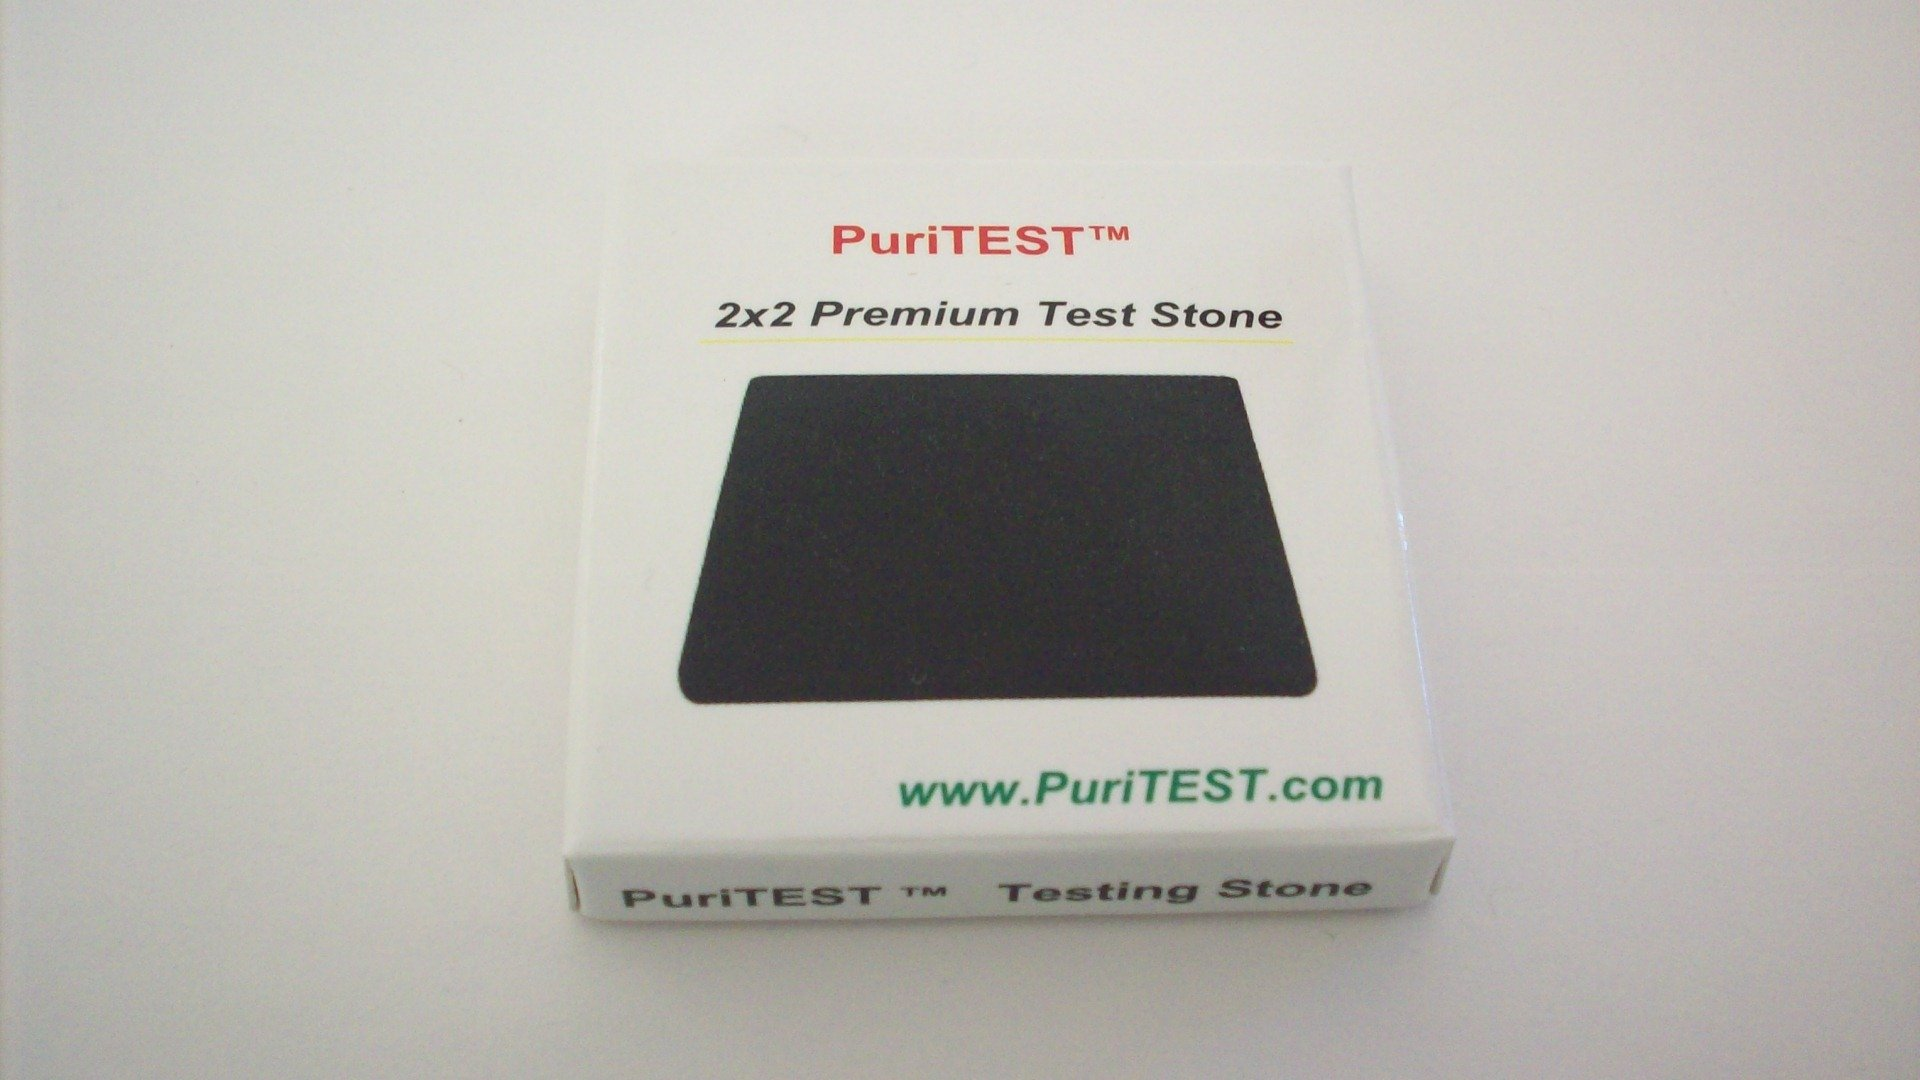 PuriTEST Pack of Test Acids Plus Electronic Scale Machine, Diamond Loupe, Silver and Gold Bars and More! by PuriTEST